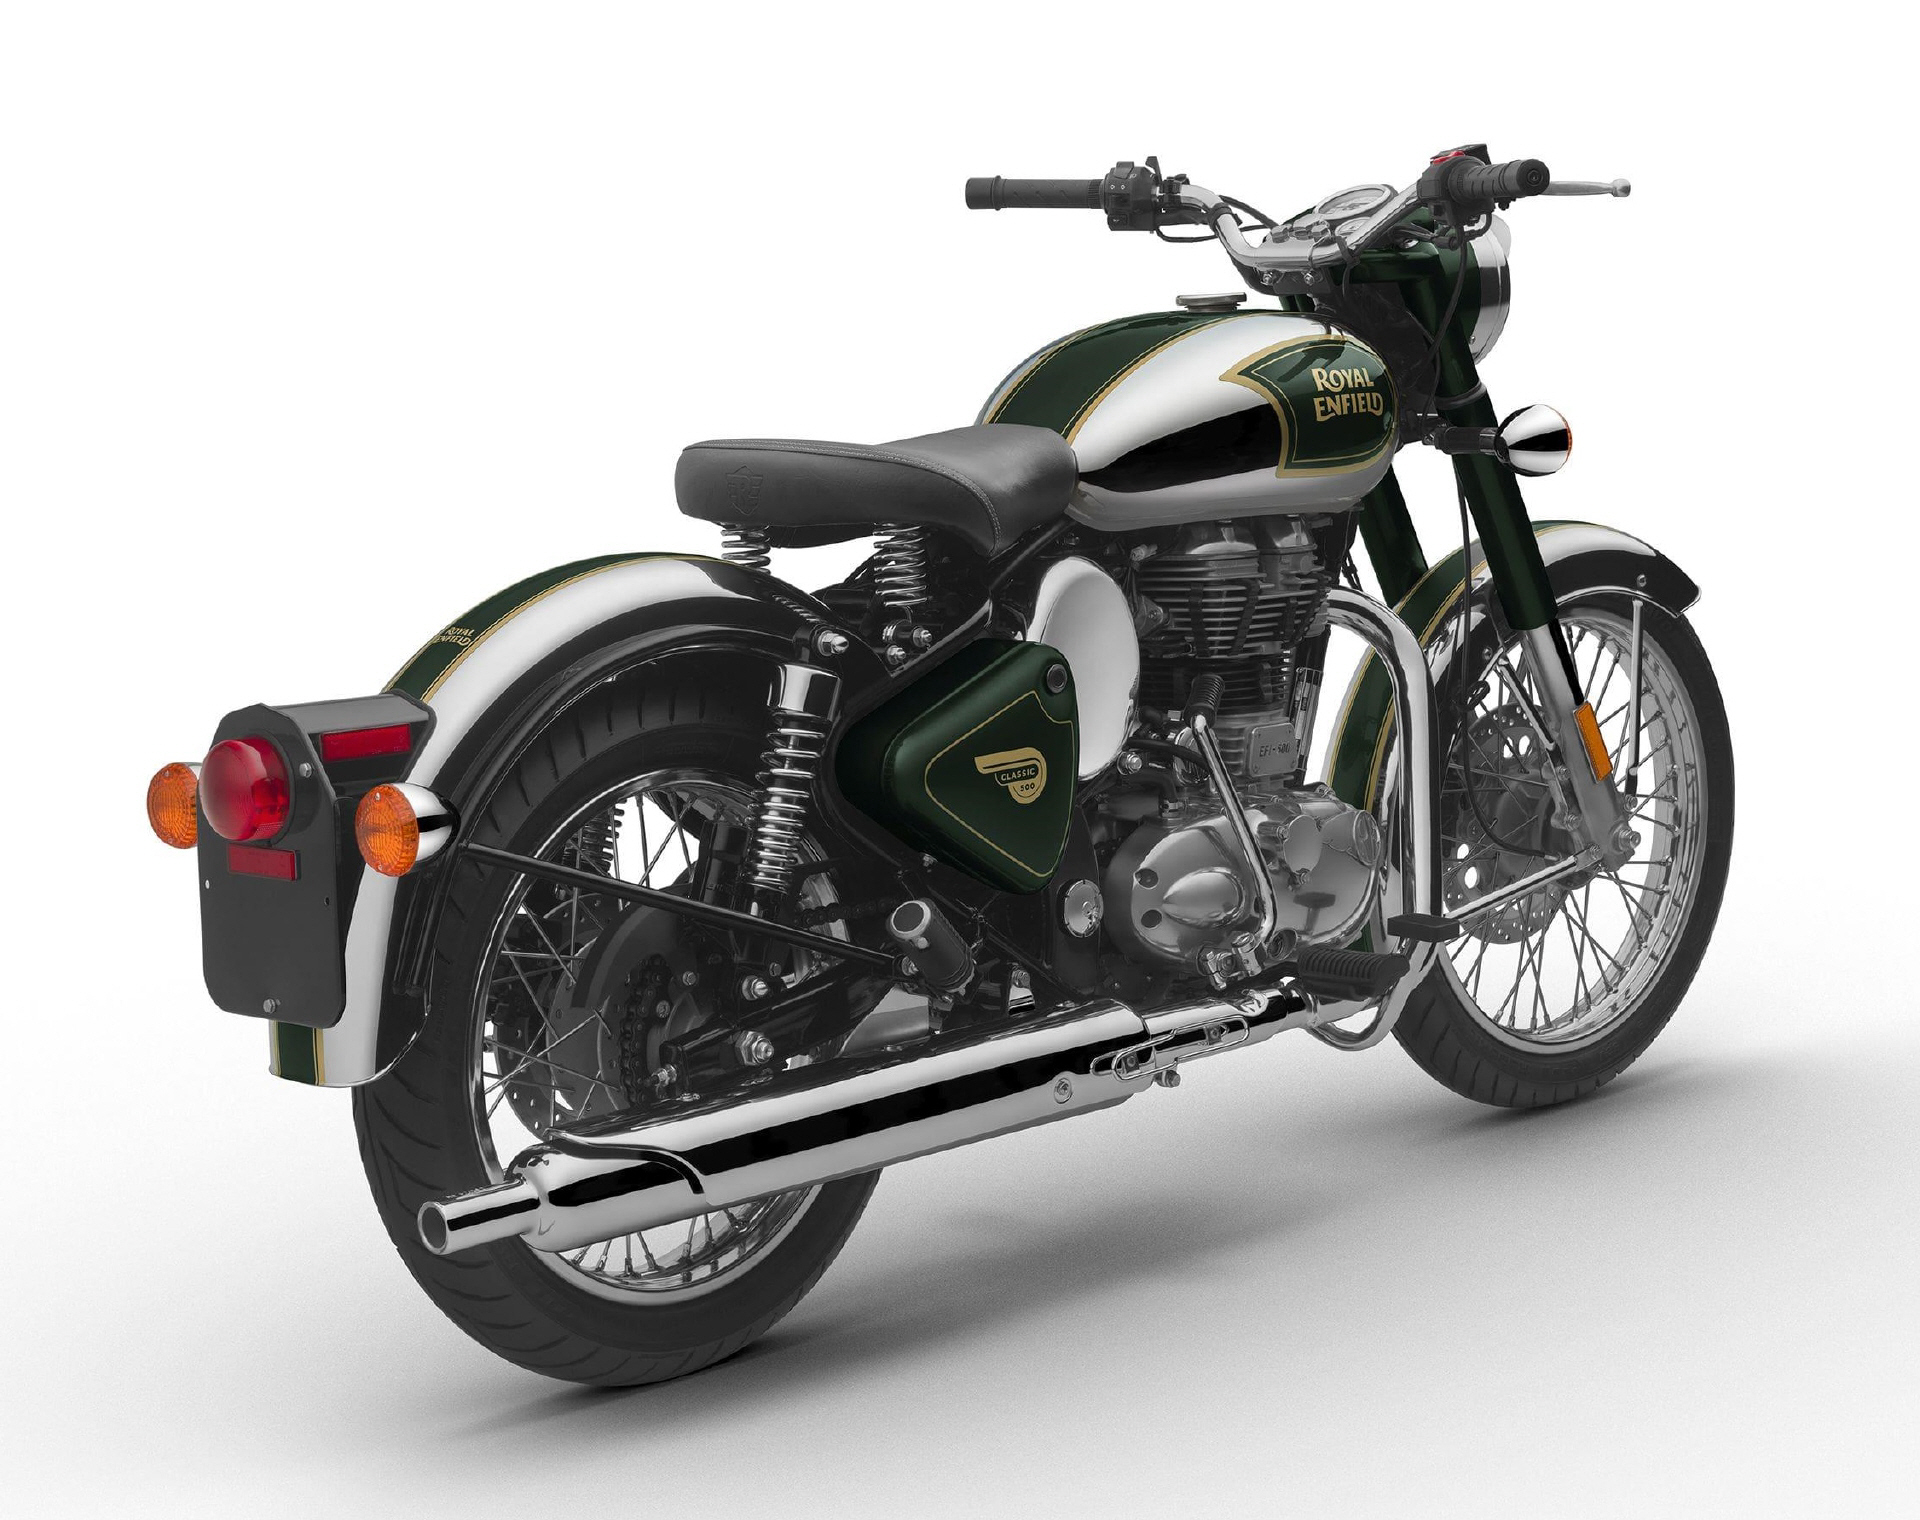 royalenfield_classic_chrome_green_01jpg